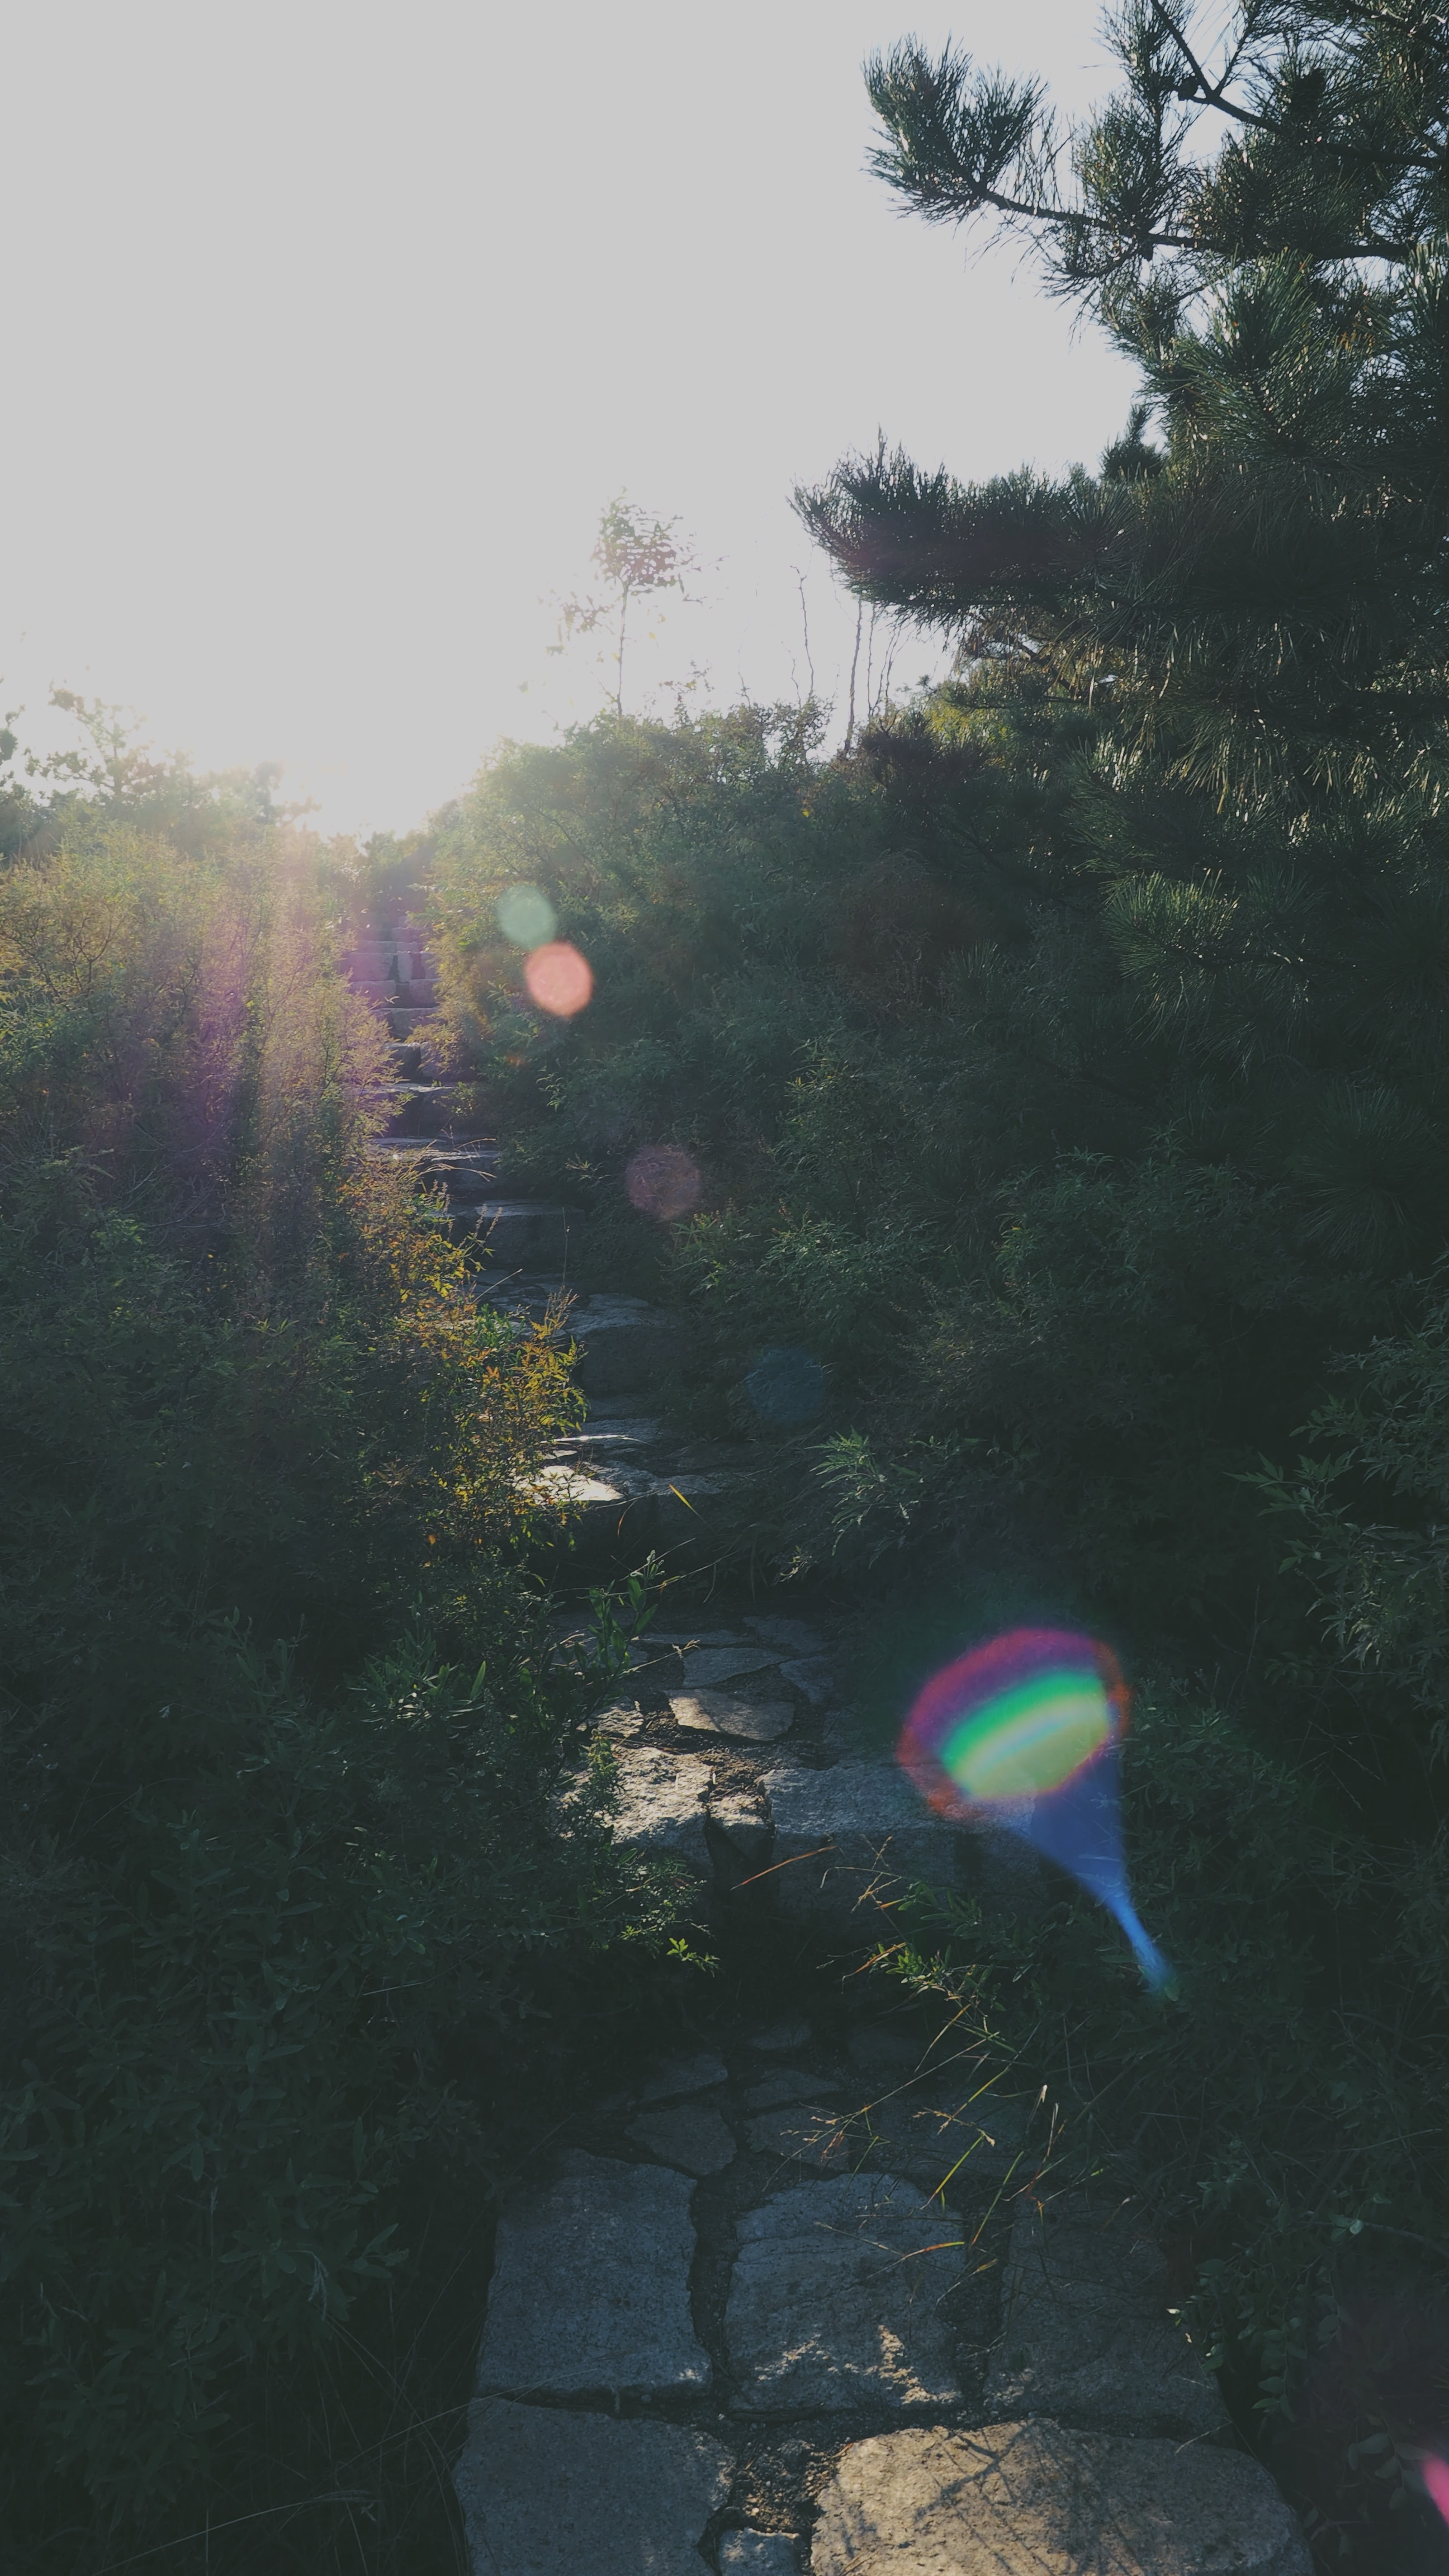 A stepping stone path up a hill with a rainbow color light glossing through